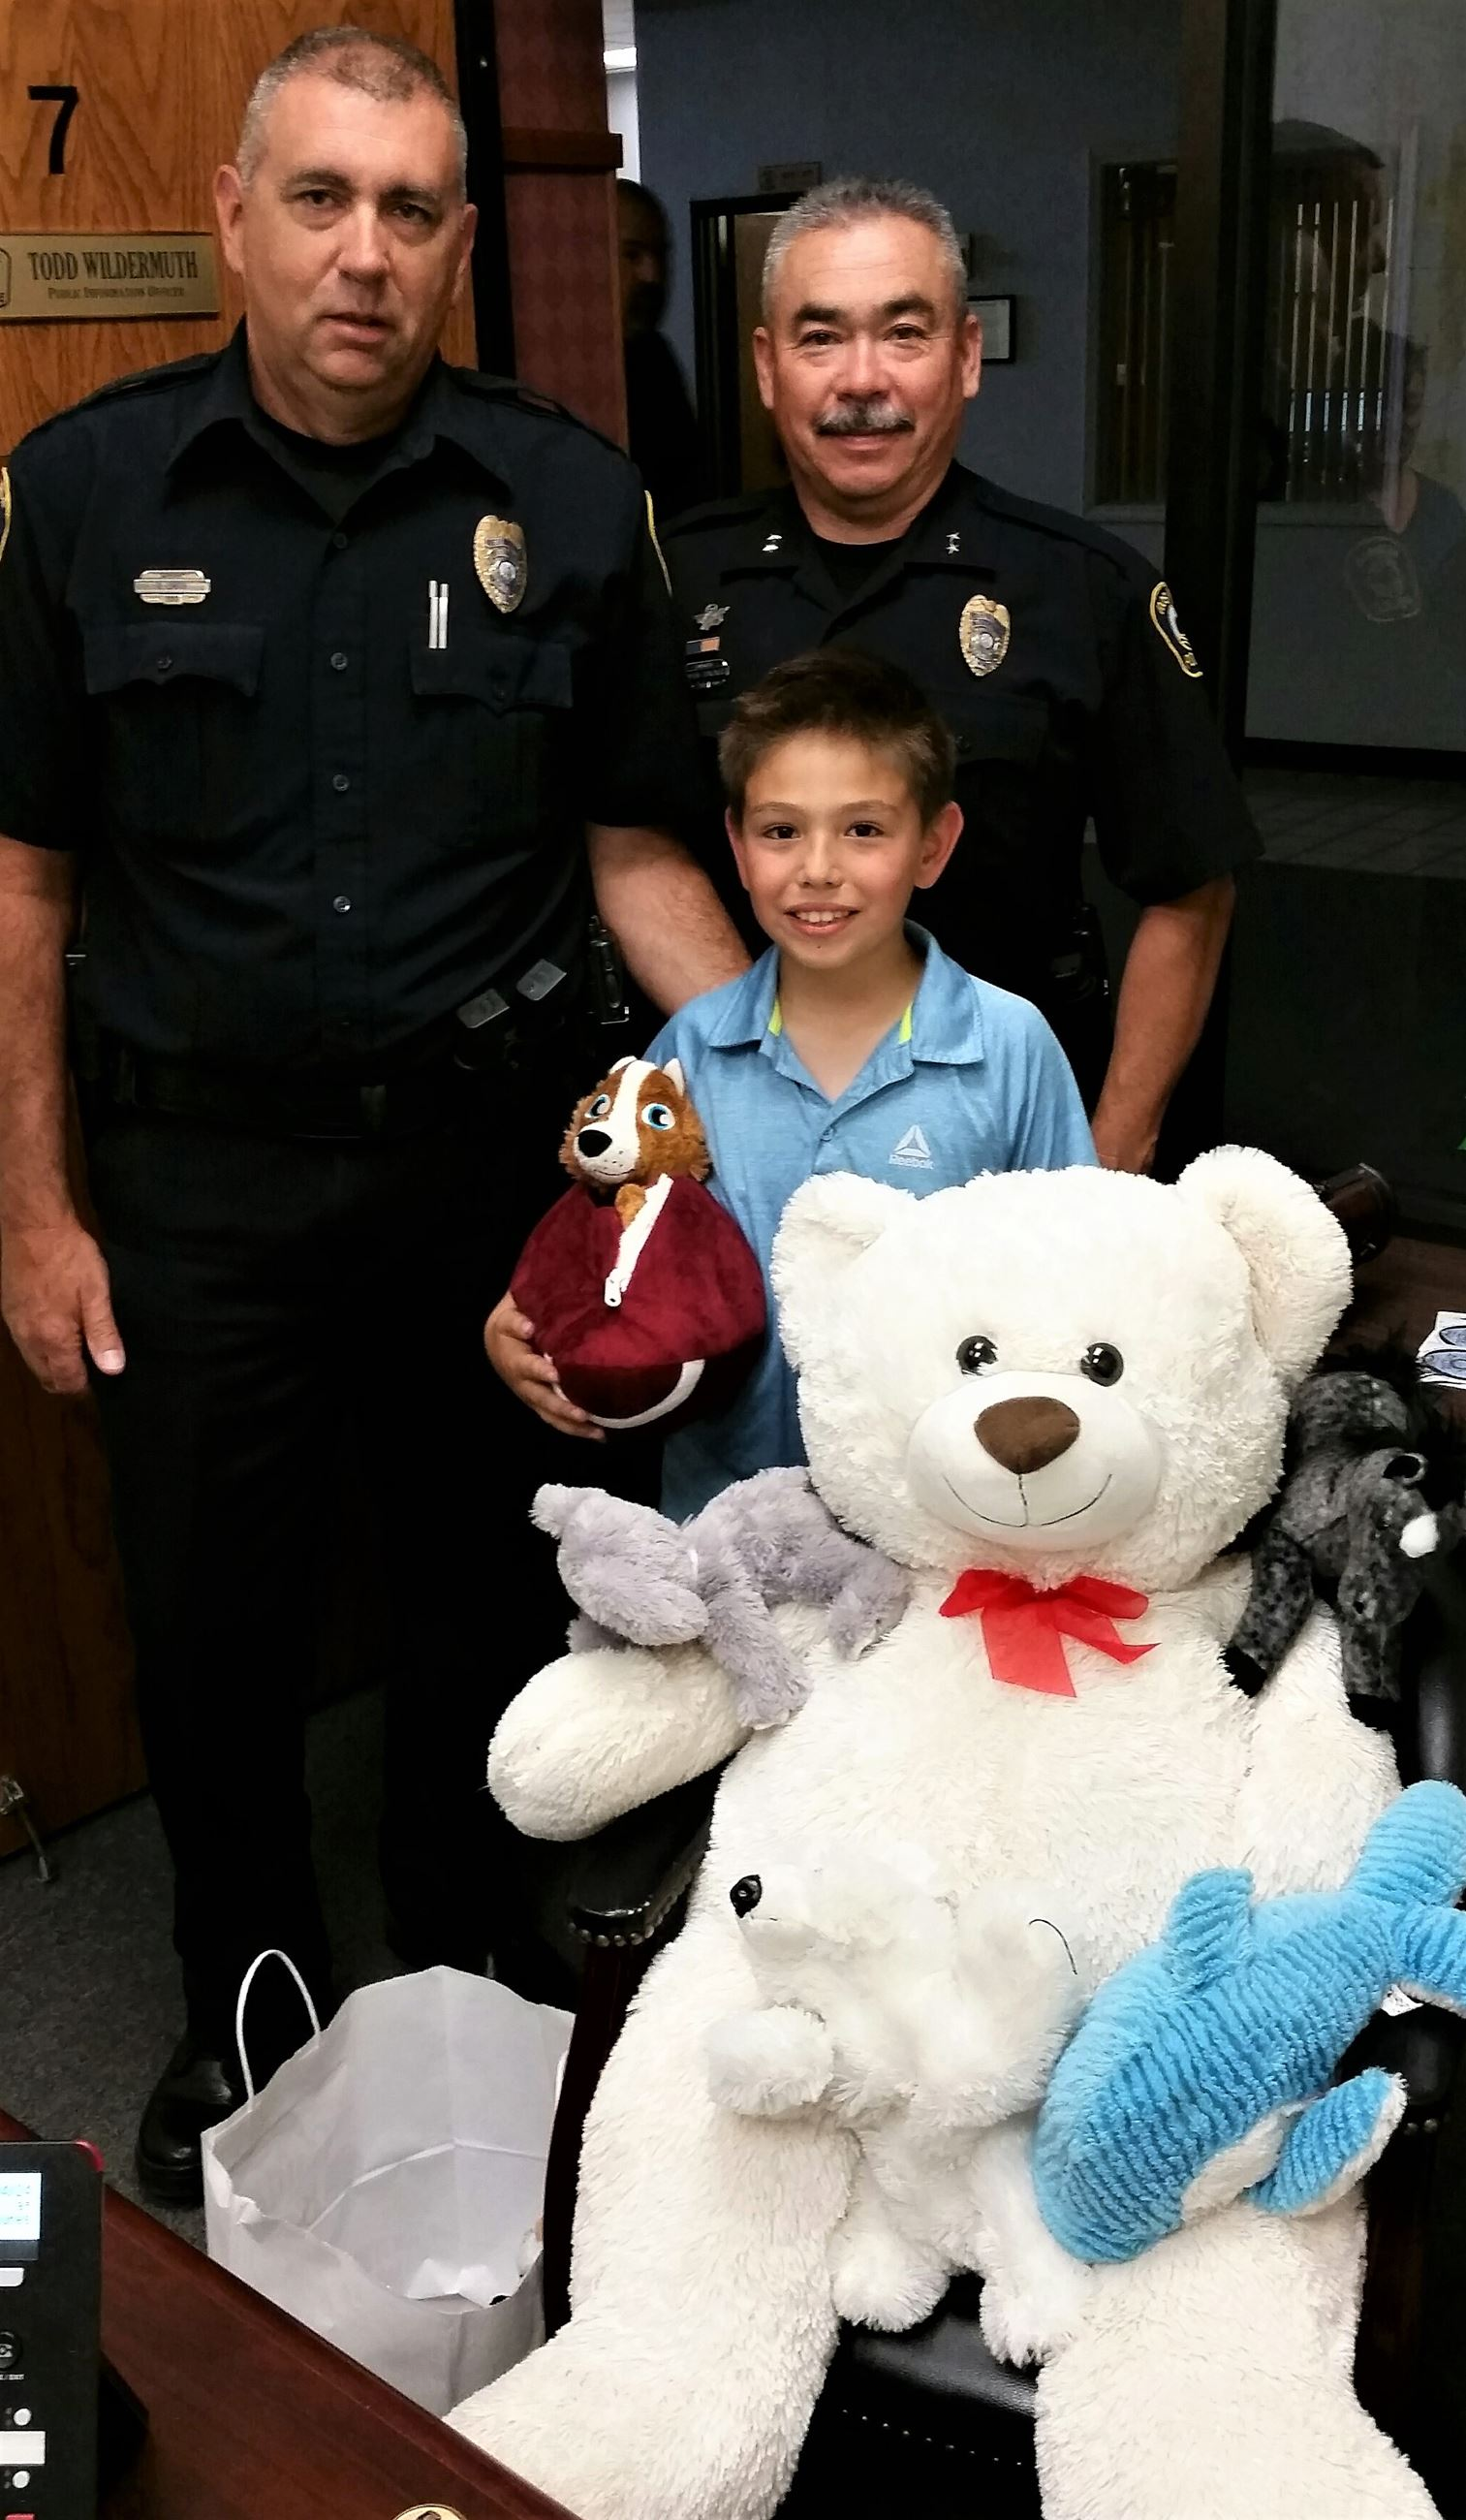 stuffed animals donated by Ryan Wheeler, 8, for other kids (4-24-18)